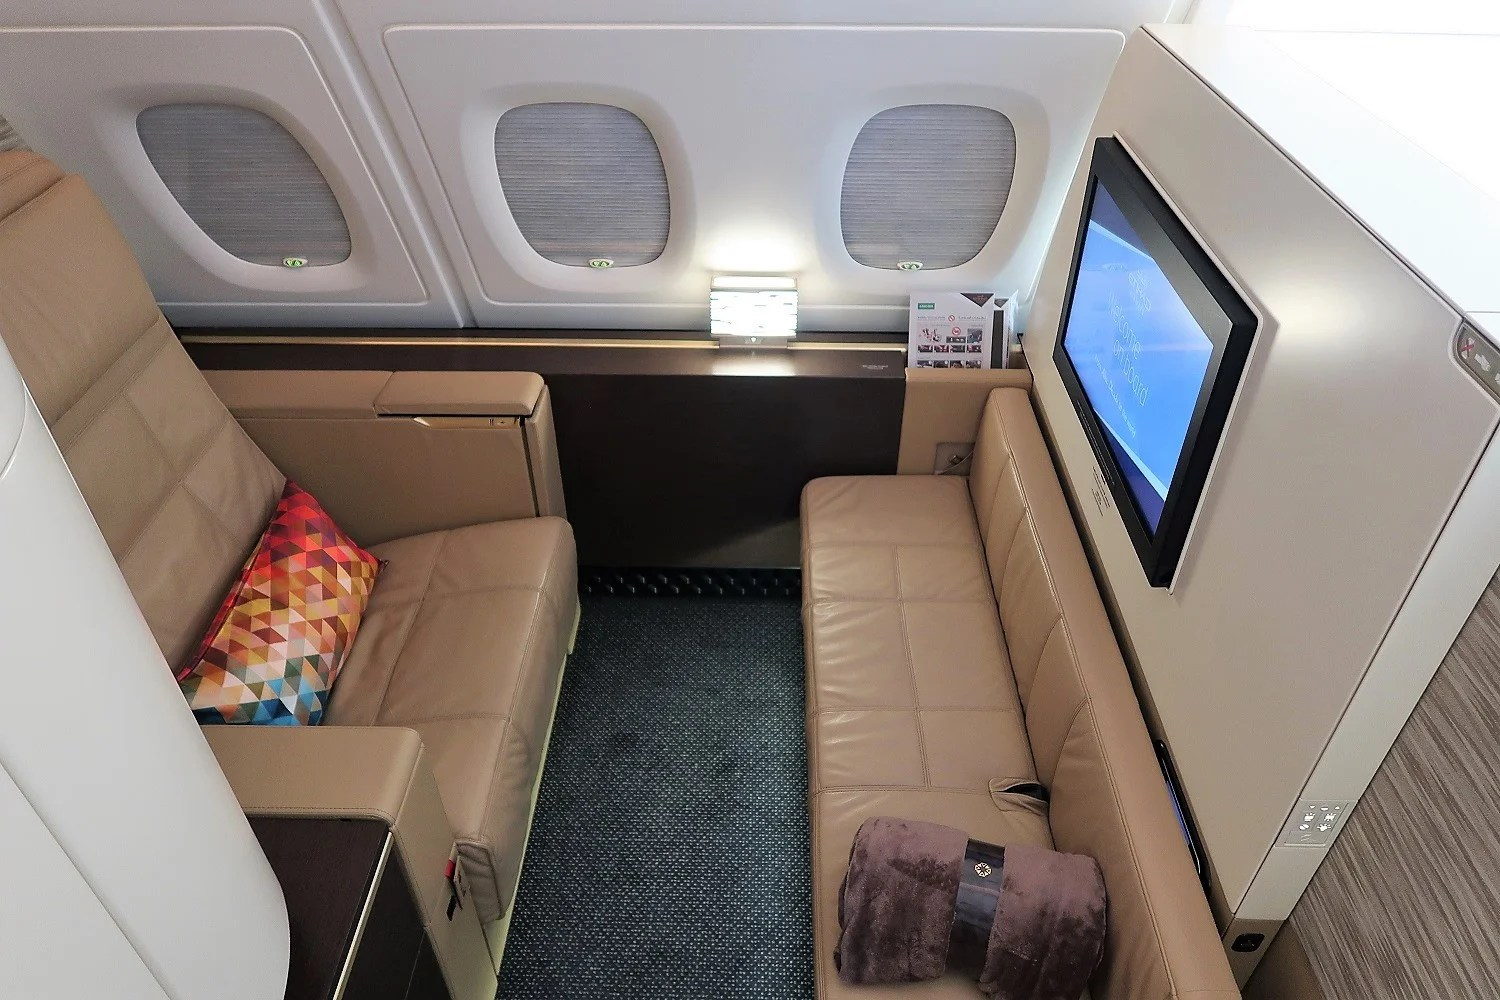 A Little Less Lustrous but Still First Class: Etihad's Apartment on the A380 From Abu Dhabi to New York